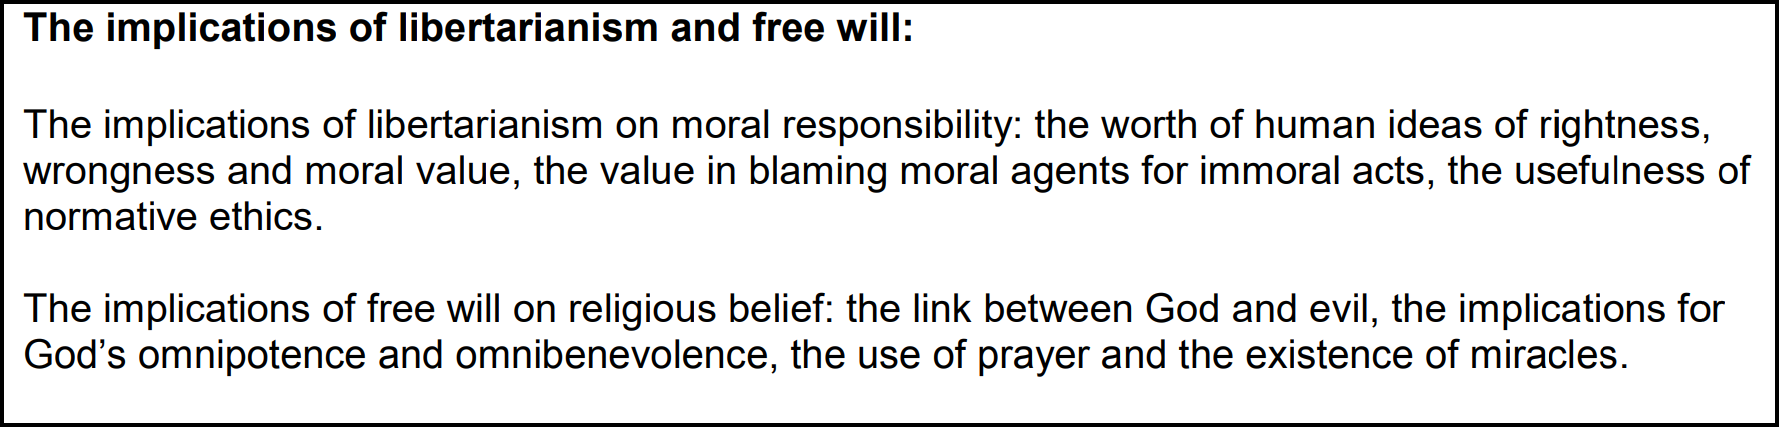 immoral acts examples